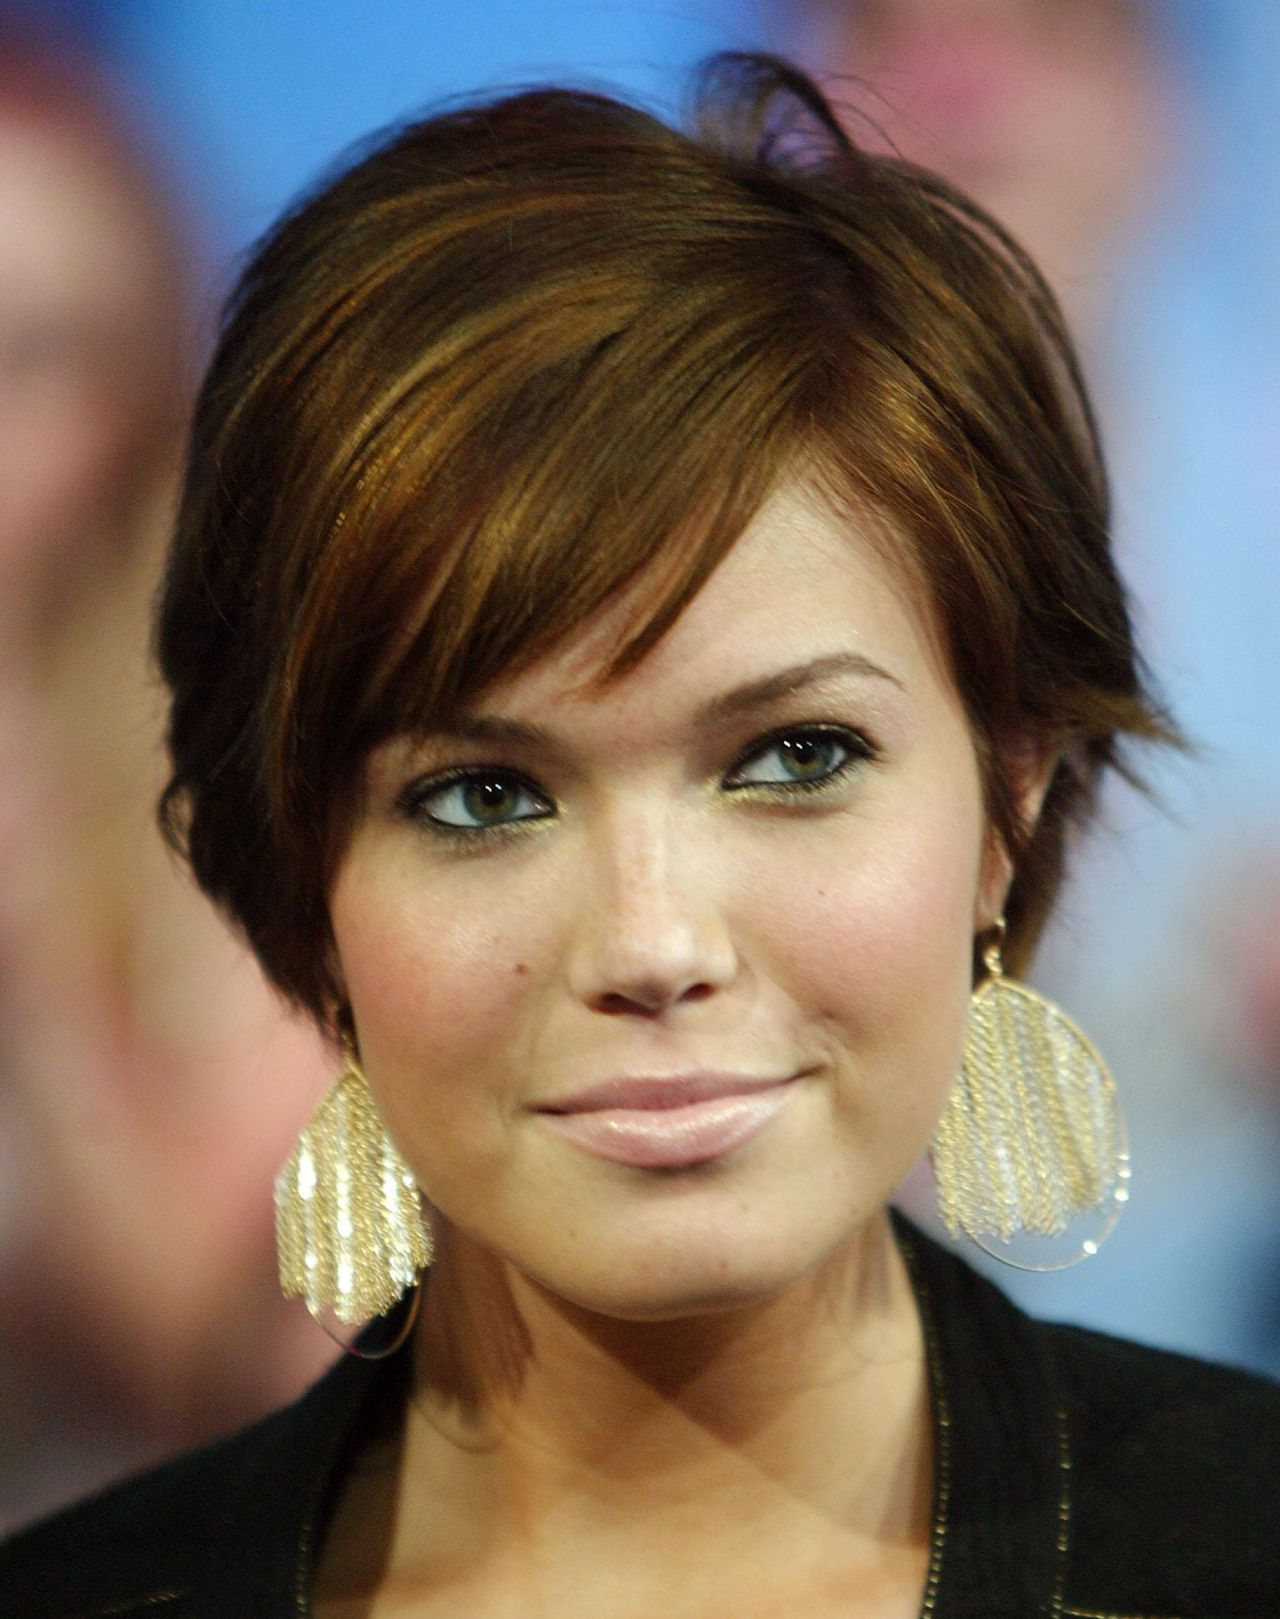 Short Female Hairstyles For Round Faces 2018 | Beauty | Pinterest Within Womens Short Haircuts For Round Faces (View 9 of 25)